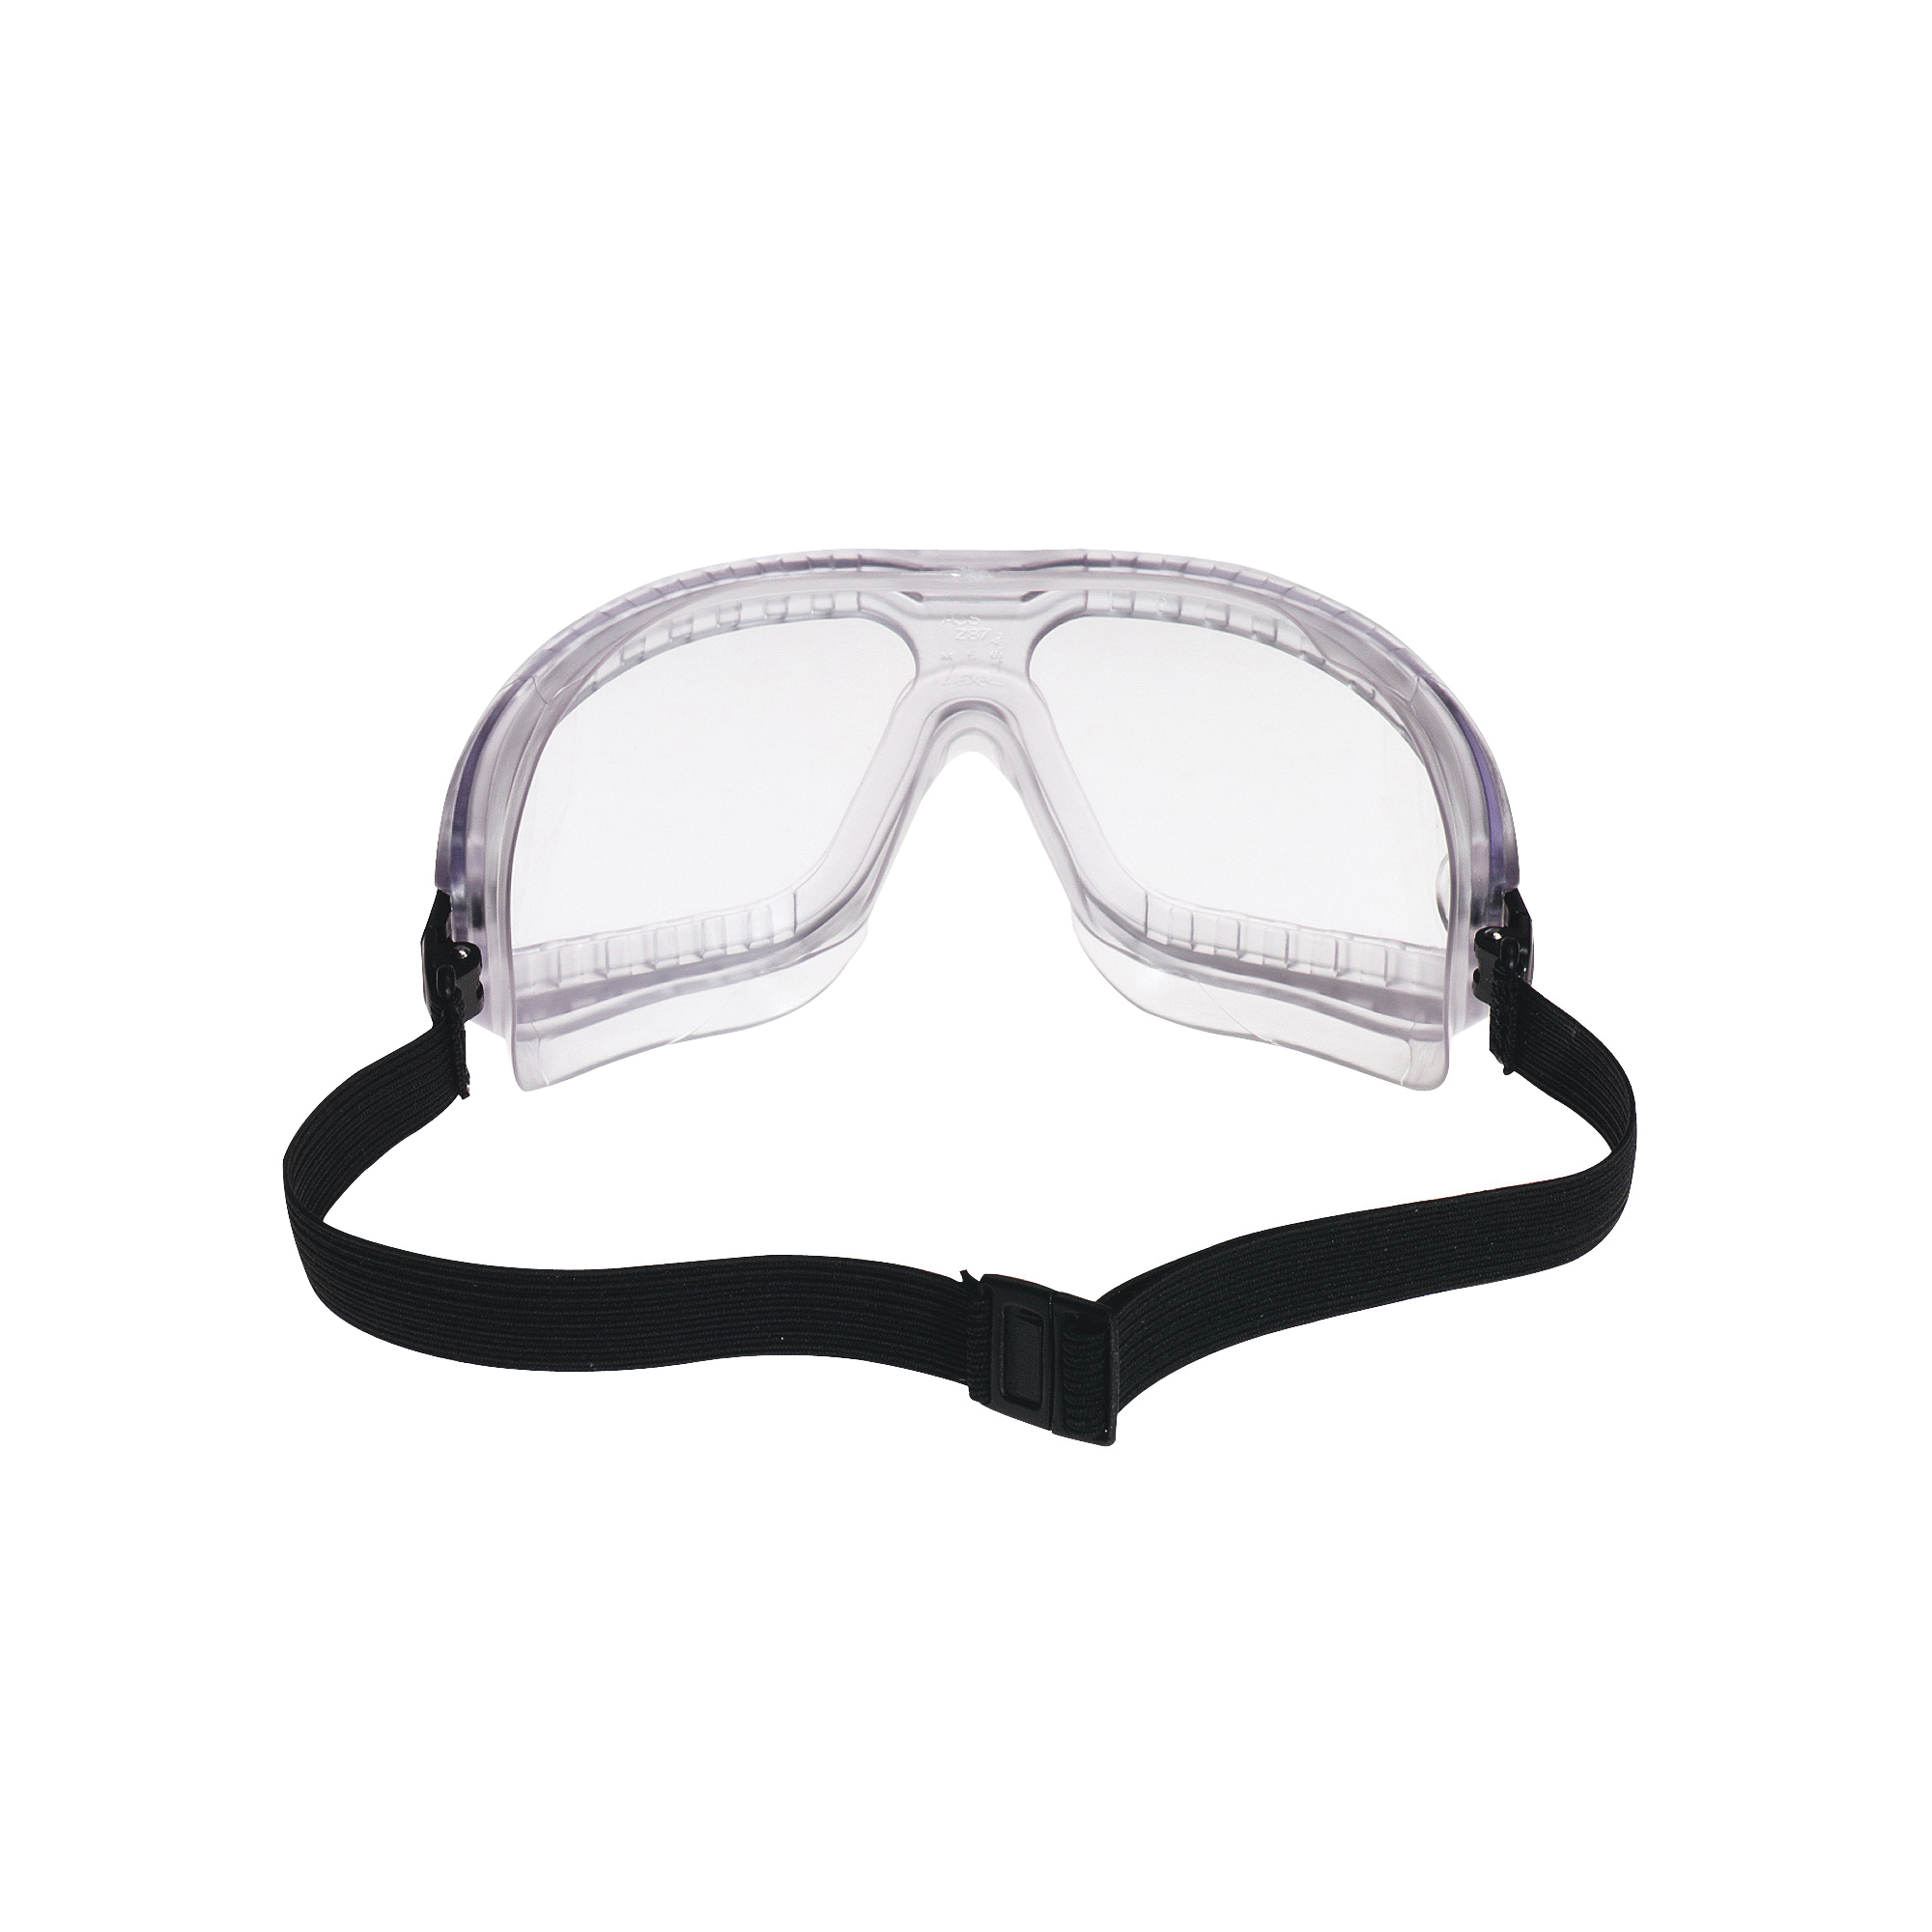 3M™ Aearo Lexa™ Splash GoggleGear™ 078371-62336 16644-00000-10 Lightweight Safety Goggles, Anti-Fog/Impact Resistant/UV-Protective Clear Polycarbonate Lens, 99.9% % UV Protection, Elastic Strap, Specifications Met: ANSI Z87.1-2003, CSA Z94.3-2007